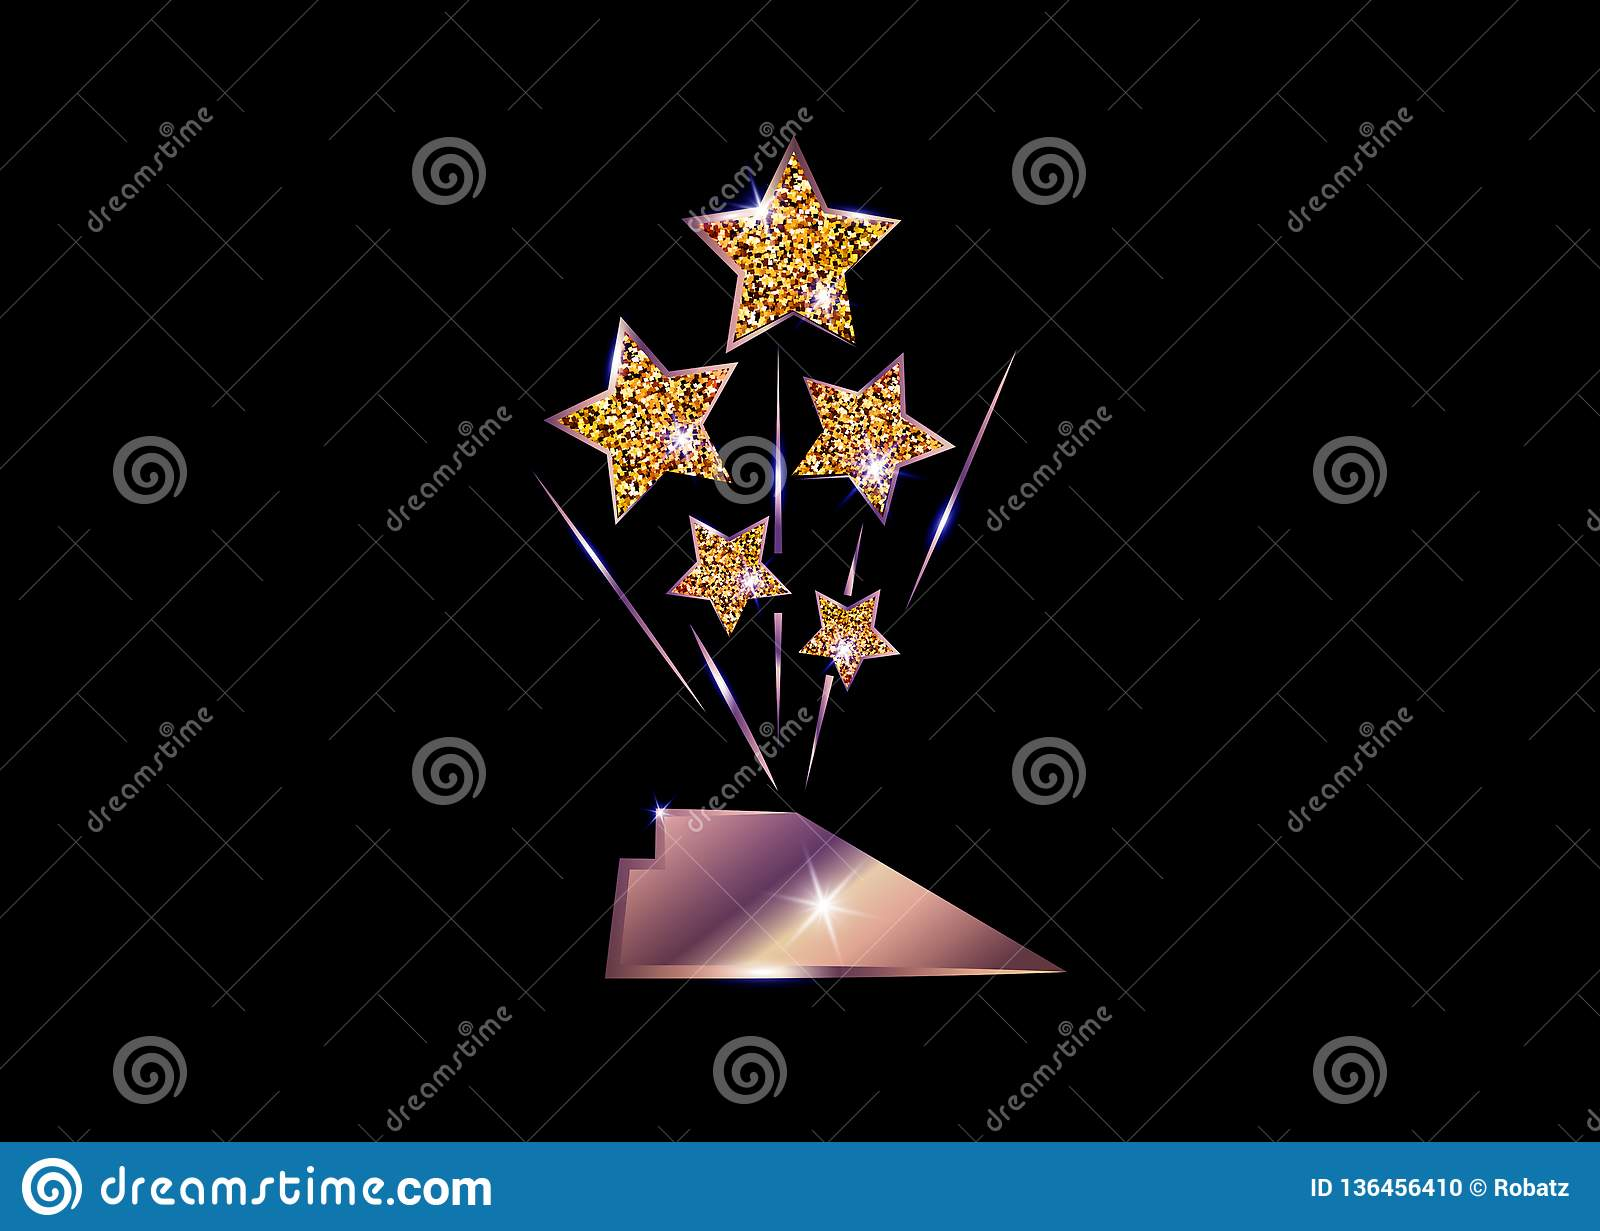 HOLLYWOOD Oscars Movie PARTY Gold STAR AWARD Statue Prize Giving Ceremony. Golden stars prize icon concept, Silhouette statue icon